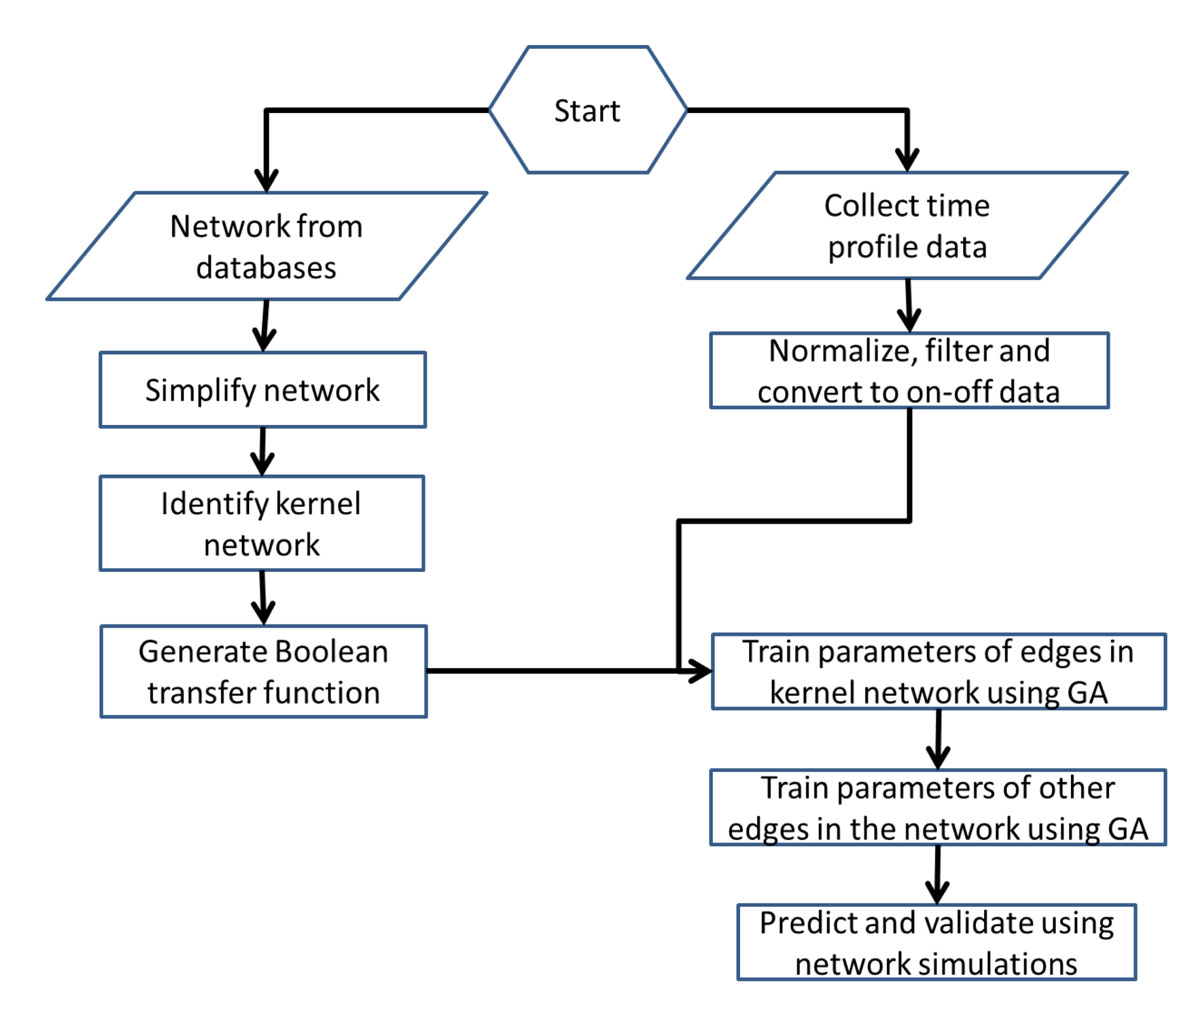 https://static-content.springer.com/image/art%3A10.1186%2F1471-2105-12-S1-S17/MediaObjects/12859_2011_Article_4375_Fig1_HTML.jpg